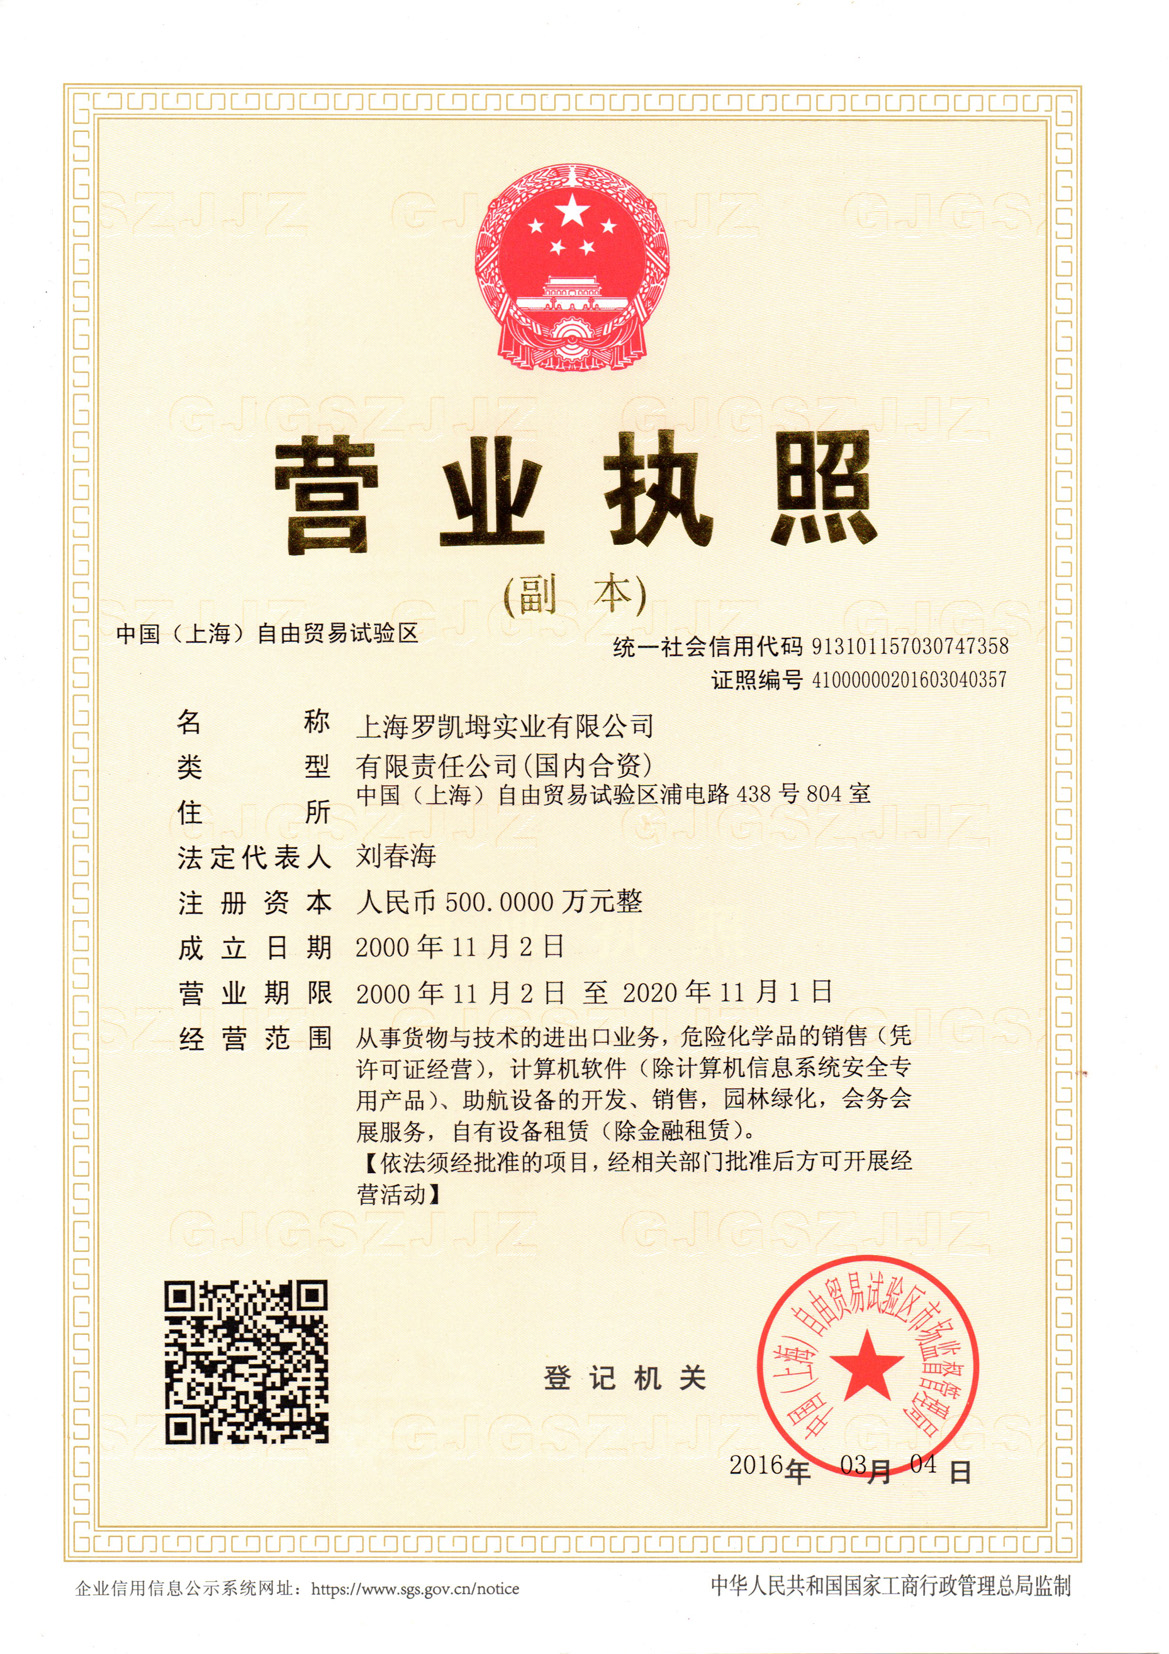 Shanghai Rokem business license